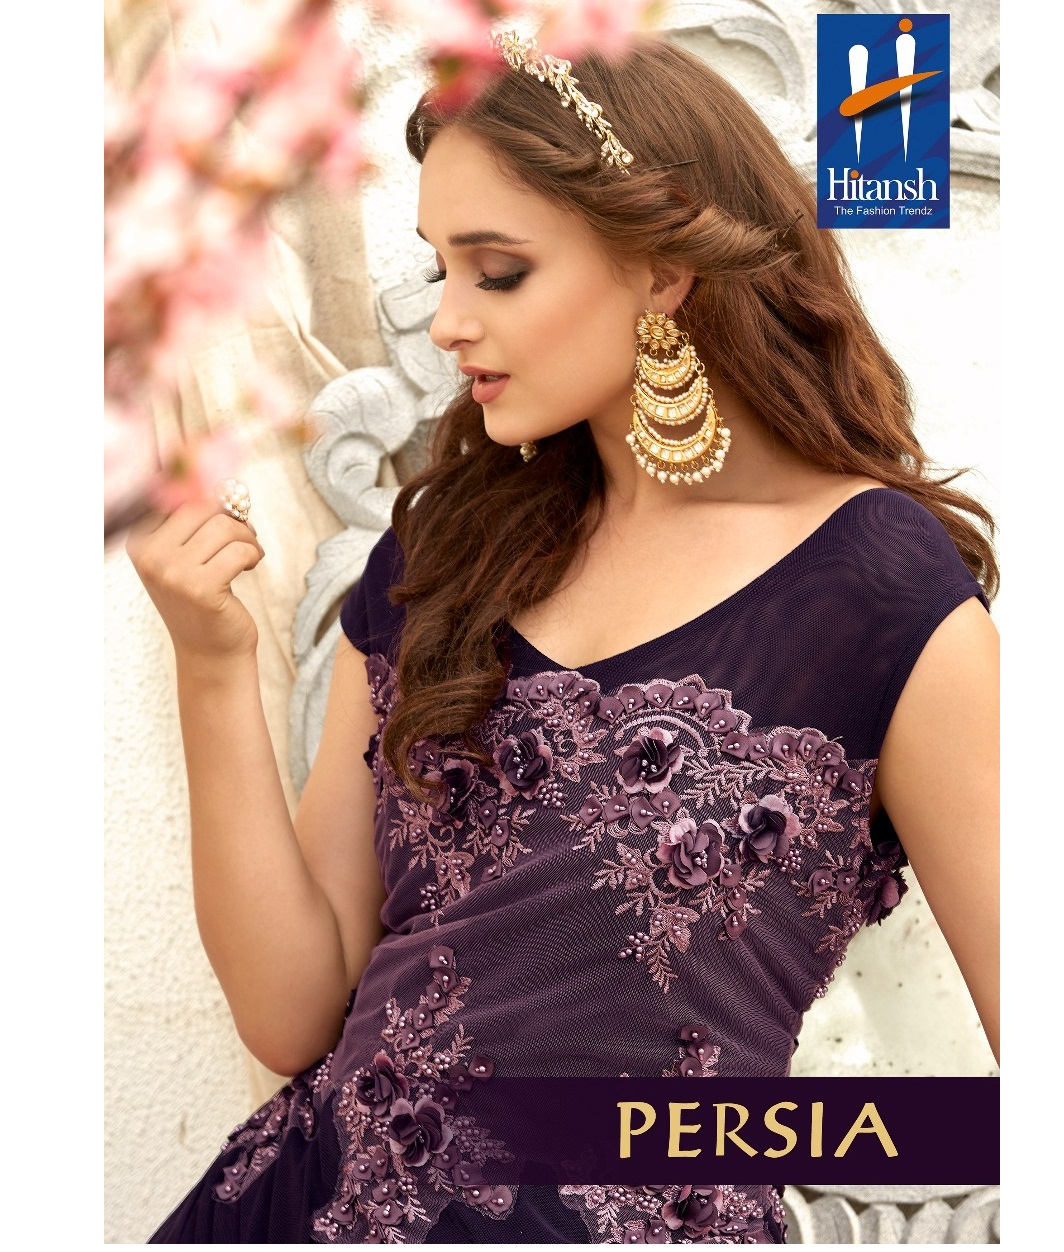 HITANSH PERSIA - Imported fancy fabrics embroidery and hand work ...